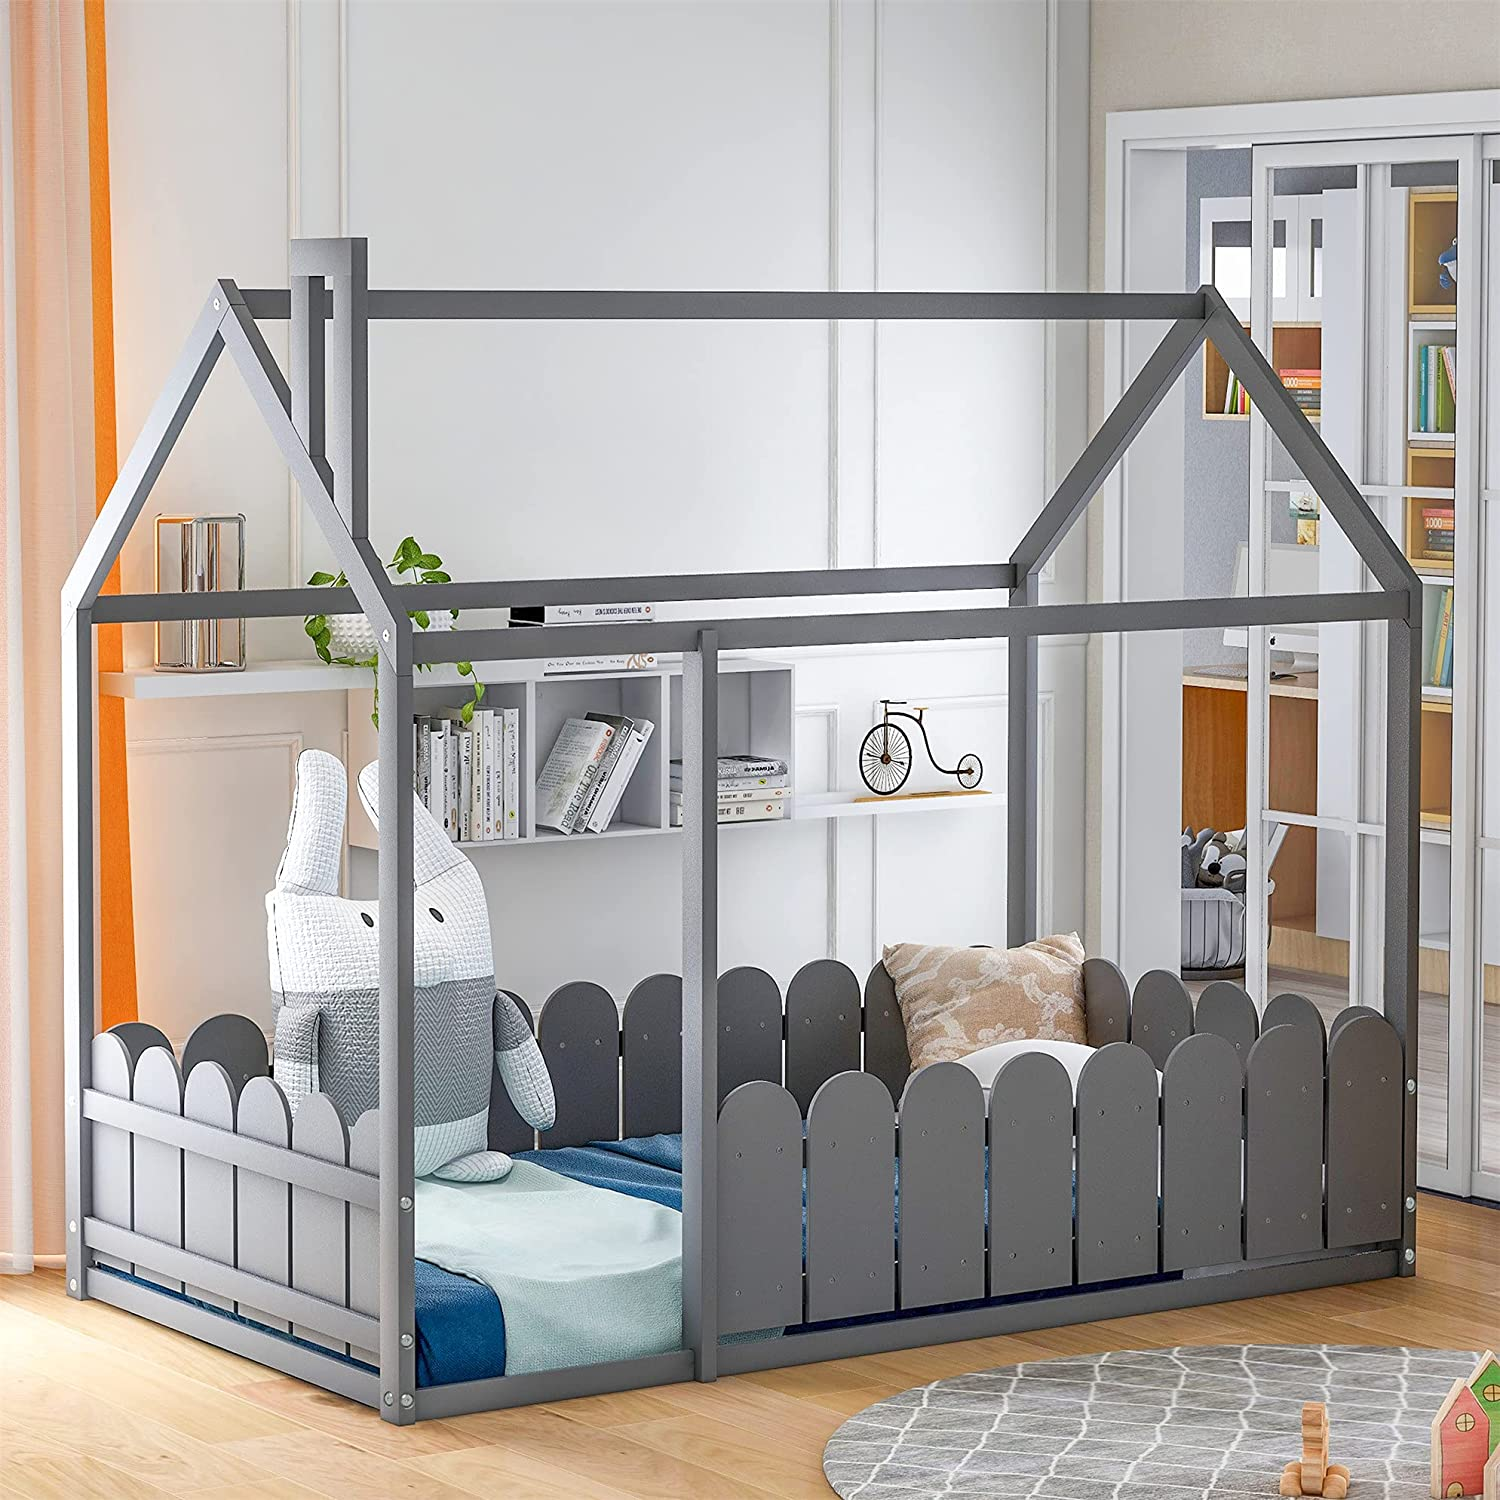 Harper & Bright Designs Twin Bed for Kids ,House Twin Bed with Fence-Shaped Guardrails , Floor Twin Size Bed for Kids, Teens, Girls, Boys ,Grey